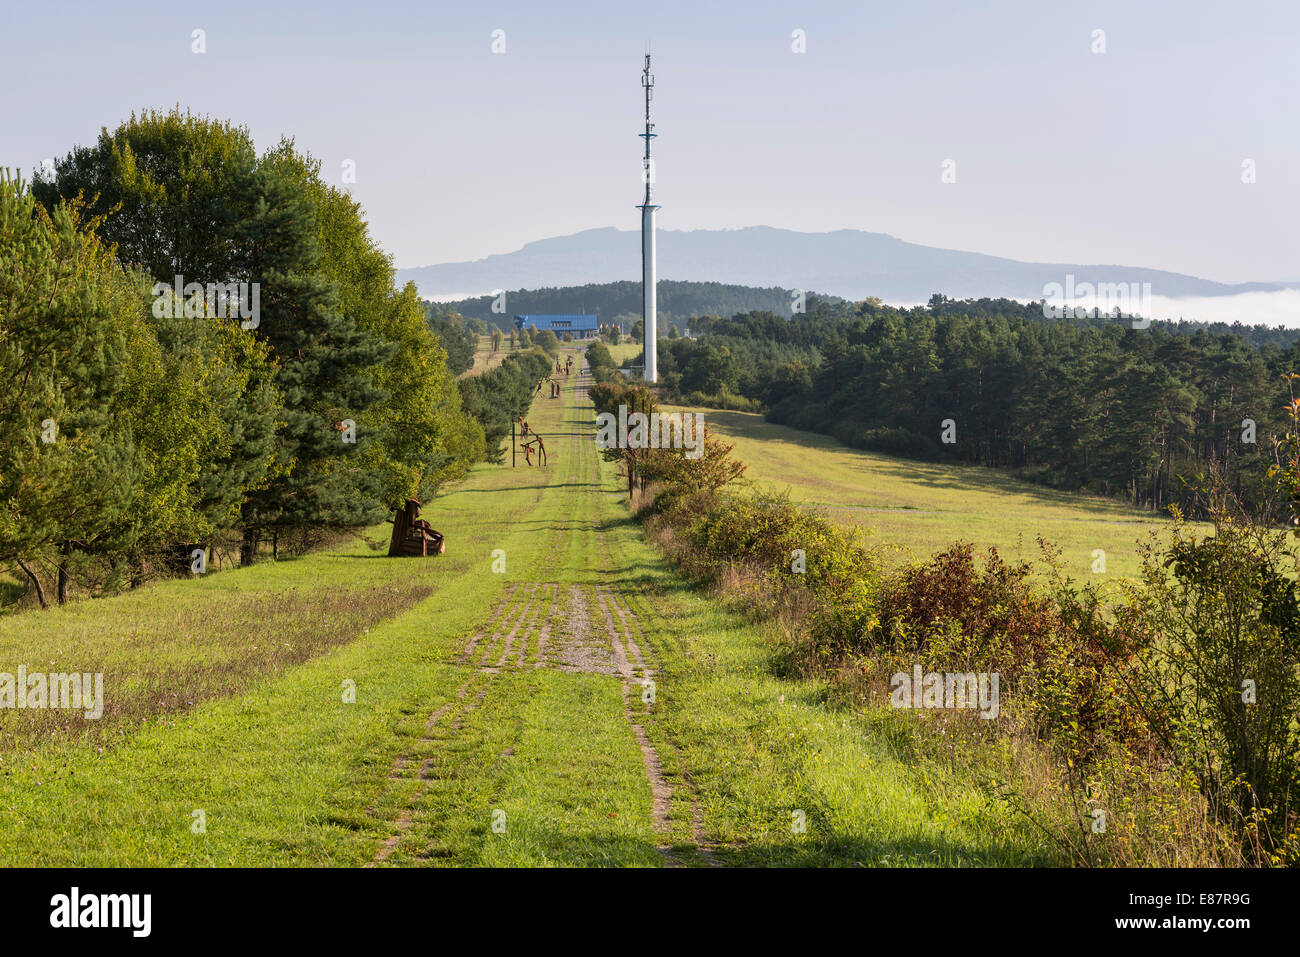 Former inner German border, death zone with border patrol path, art project 'Path of Hope', Point Alpha - Stock Image